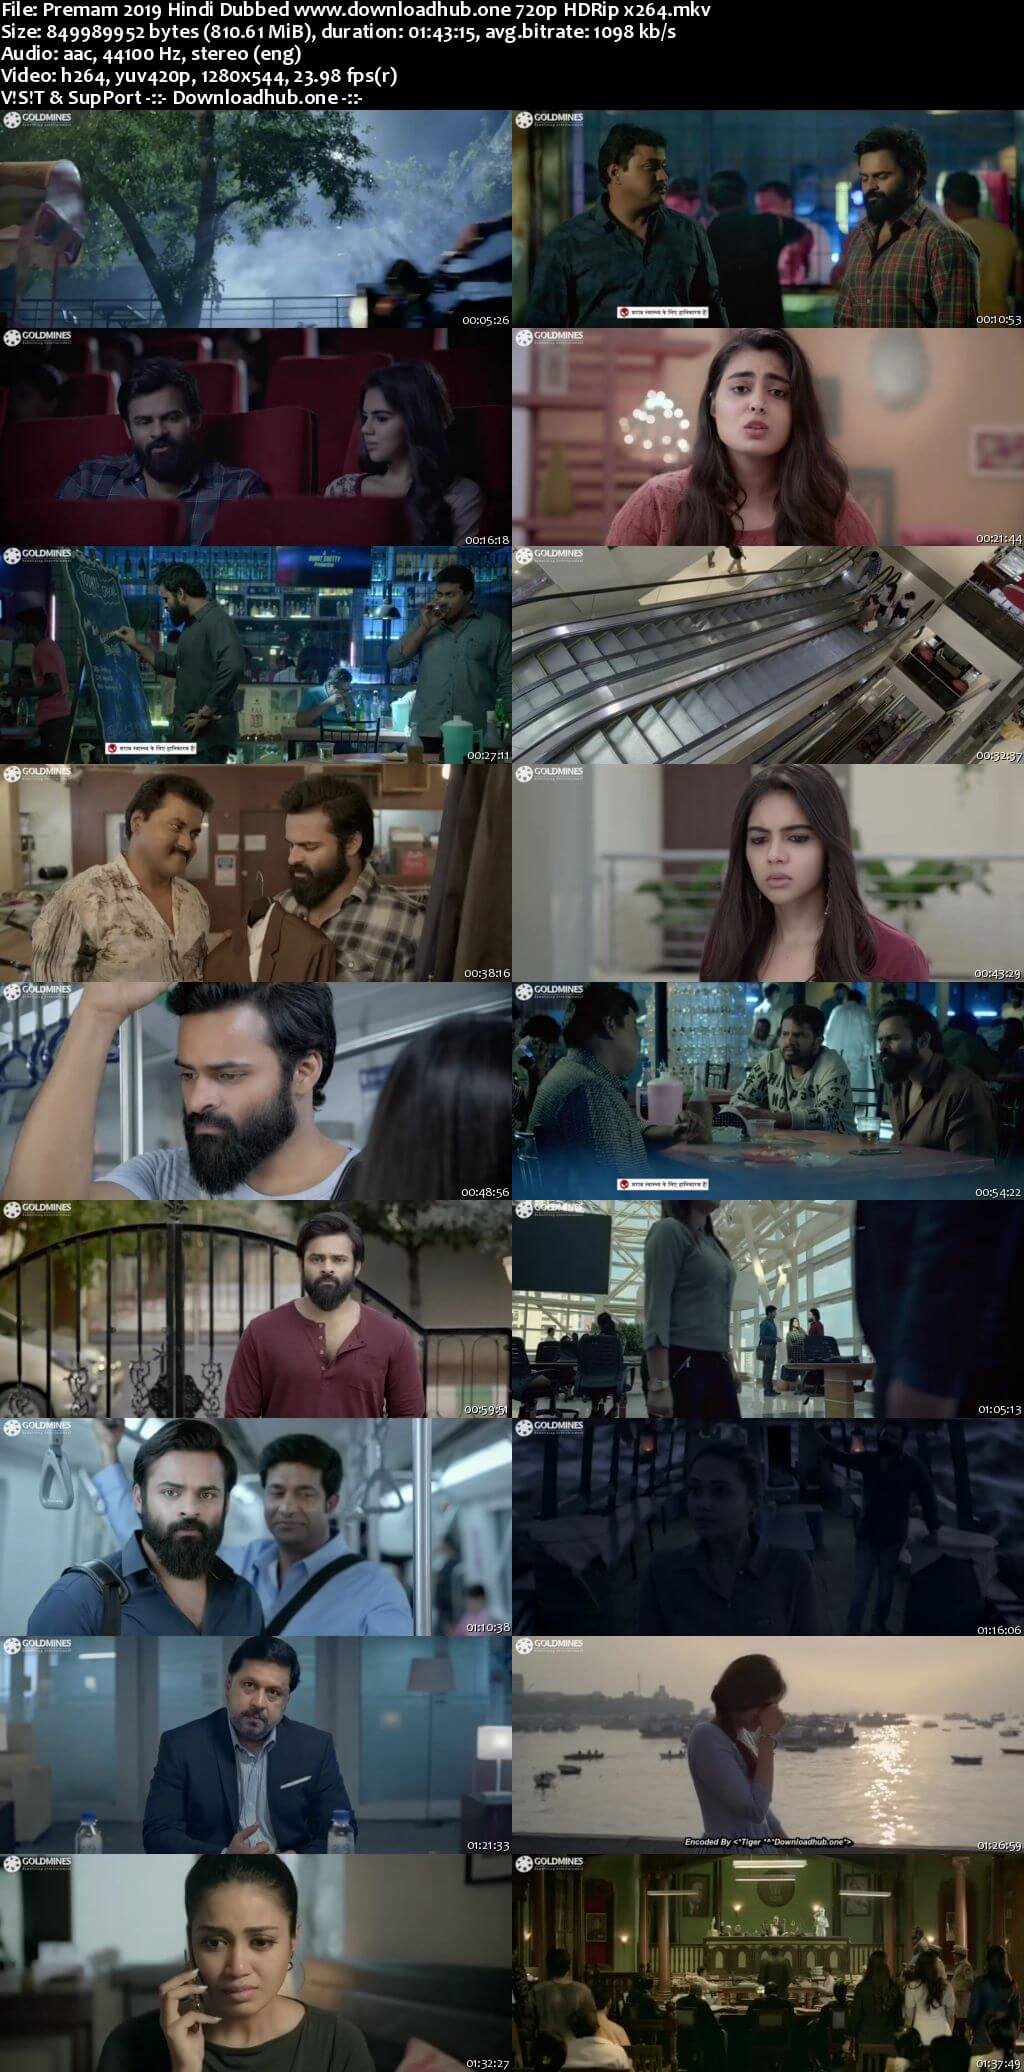 Premam 2019 Hindi Dubbed 720p HDRip x264